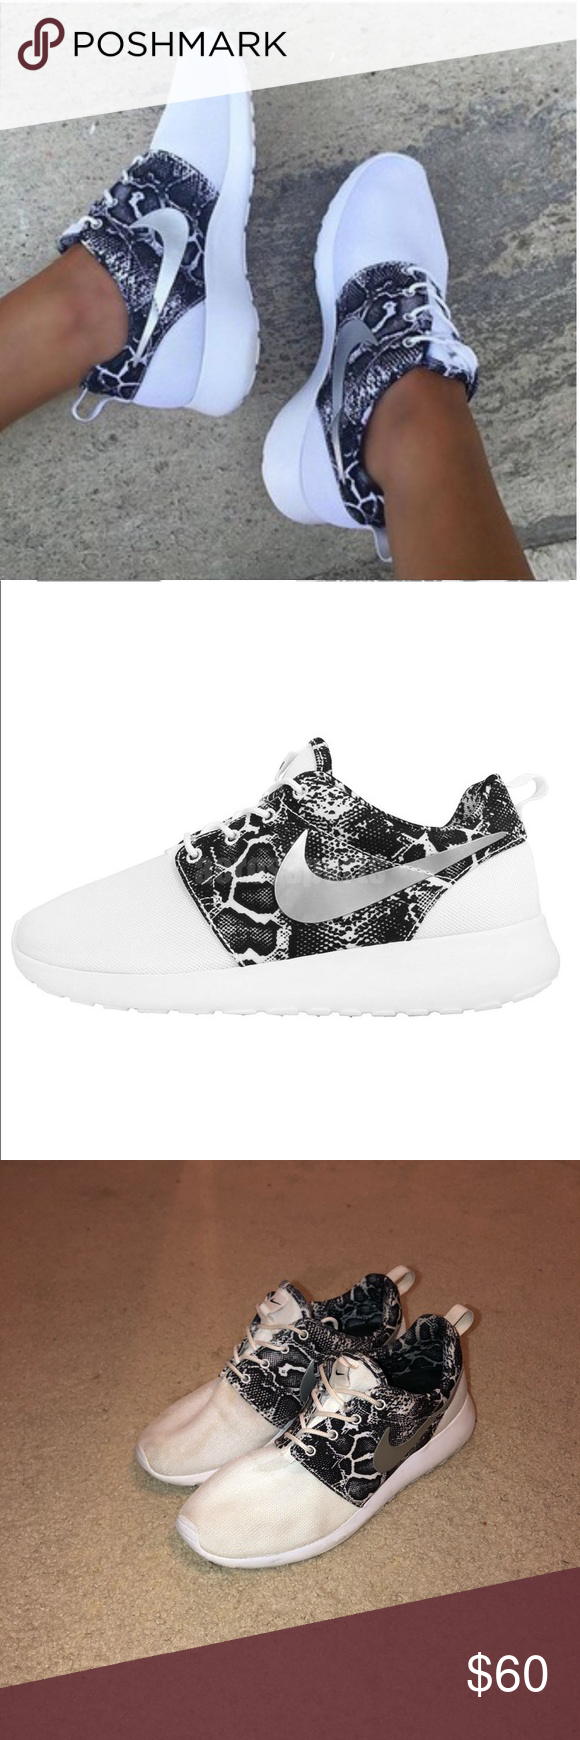 quality design a7f18 fb396 Nike roshe one print Snakeskin white silver women s slight dirt on mesh  part but can be washed away as new Nike Shoes Sneakers